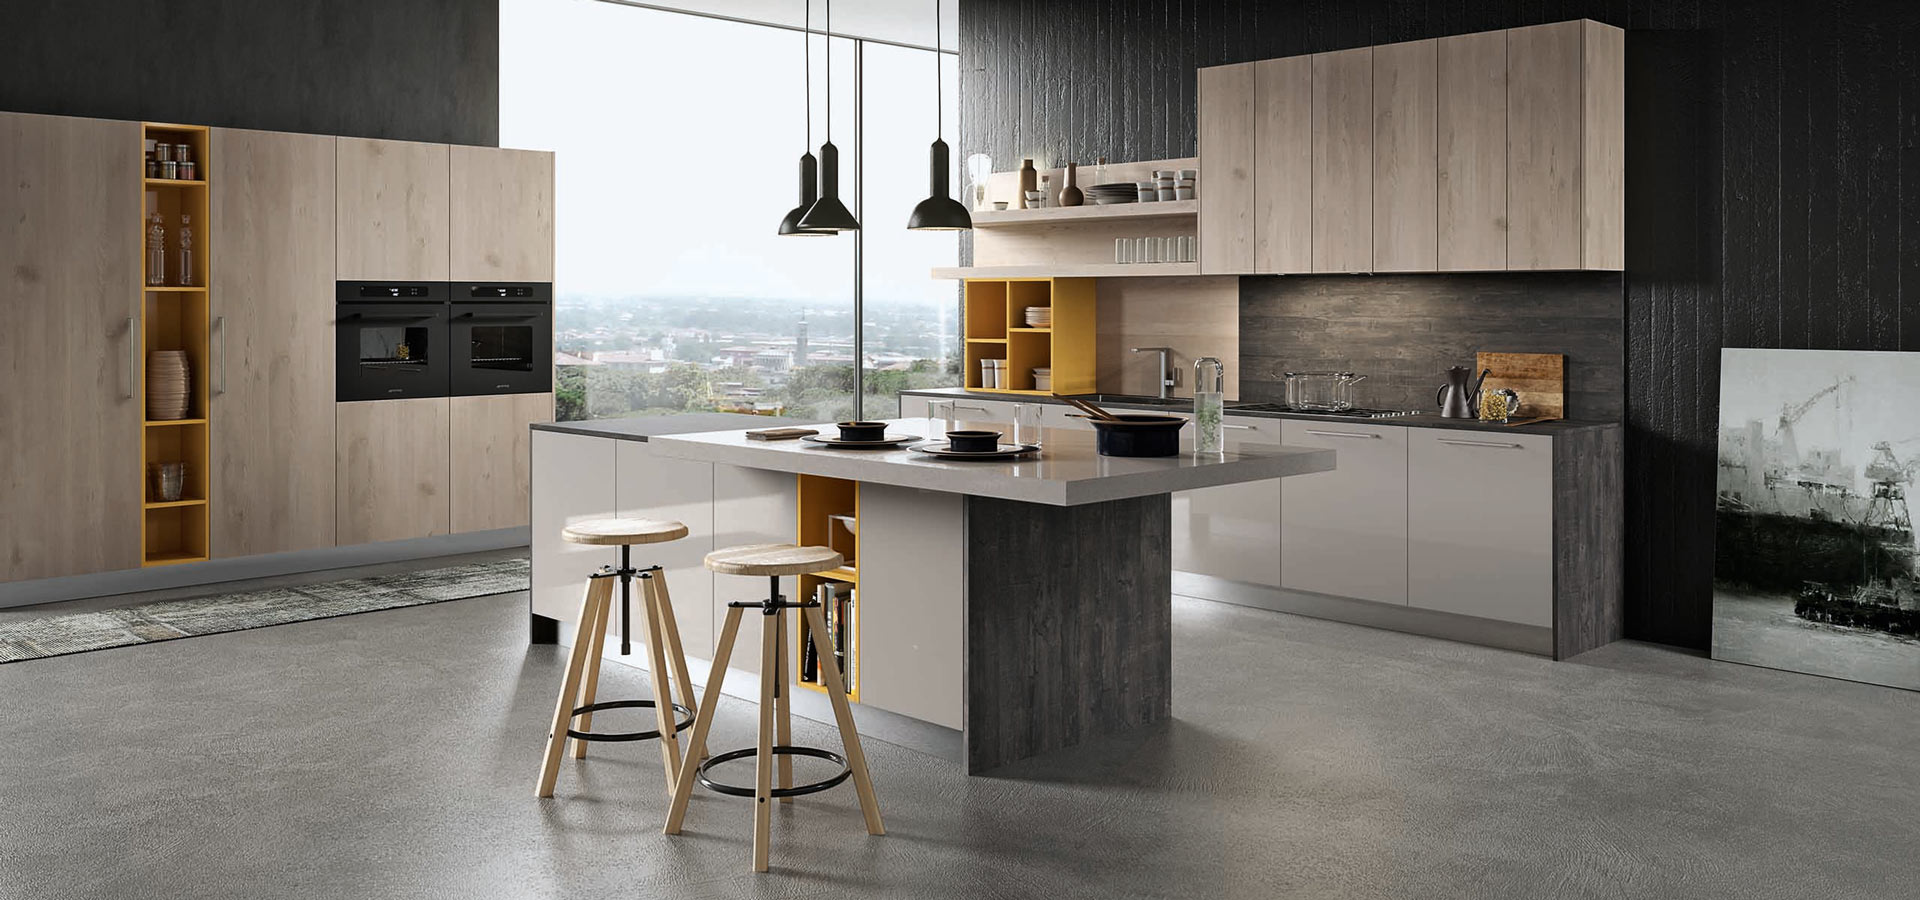 round modern kitchen arredo3